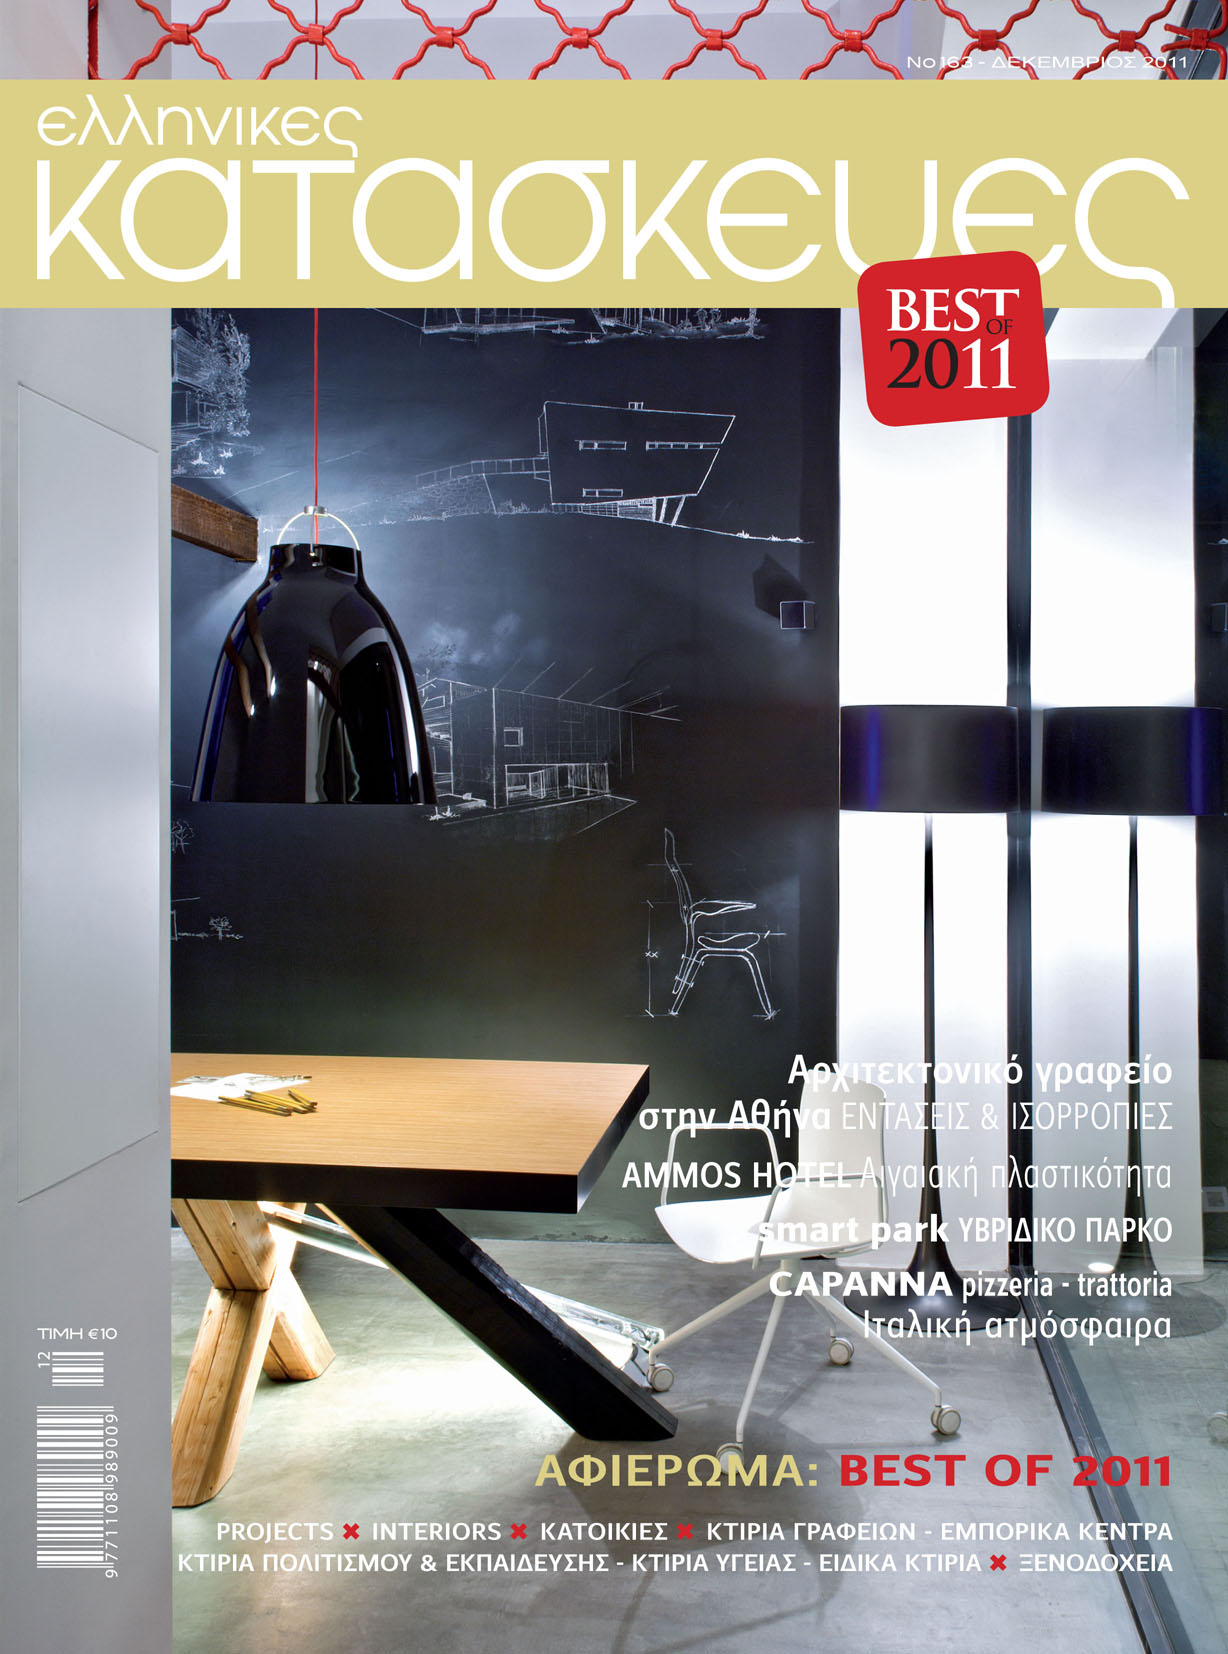 DIAMOND DELUXE HOTEL    EK MAGAZINE /BEST OF 2011